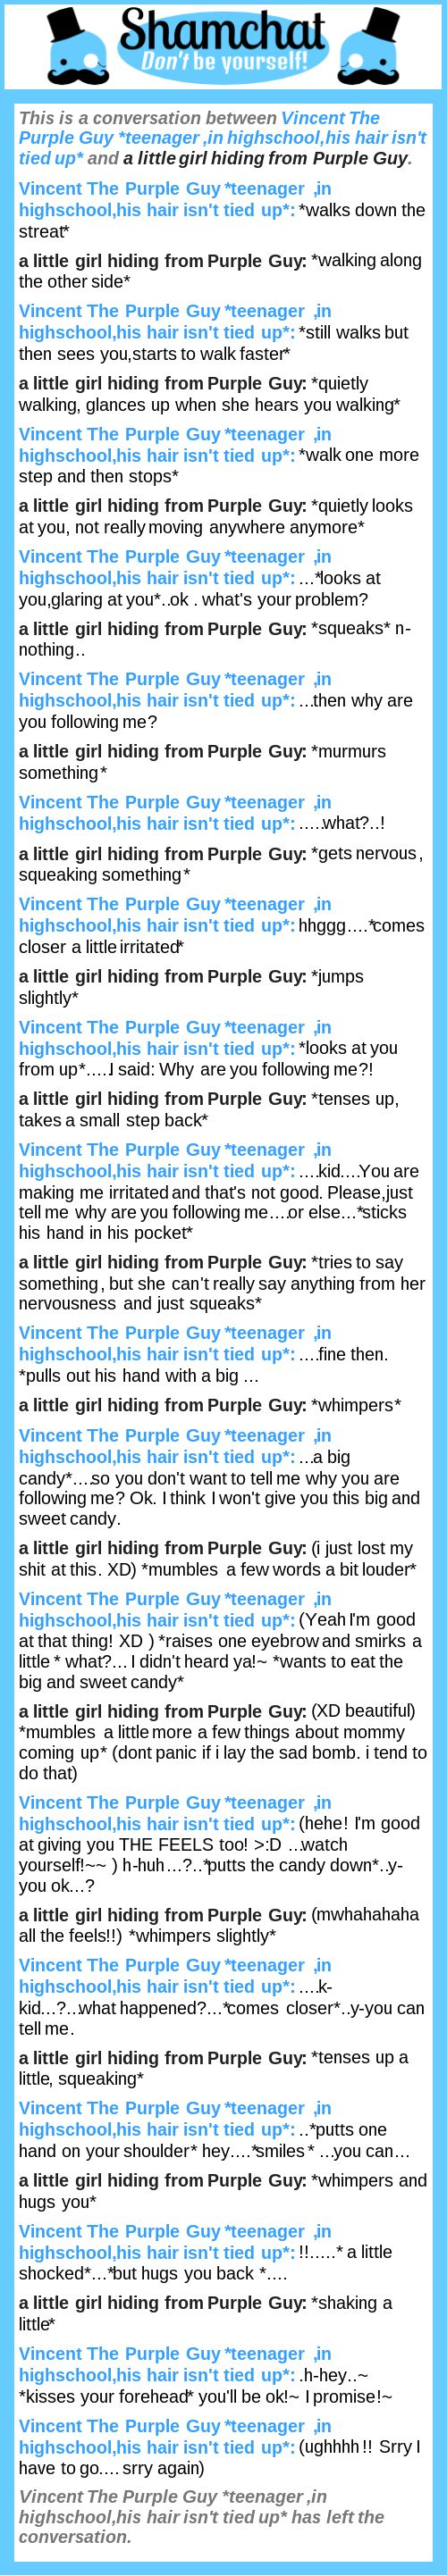 littlegirl tied up A conversation between a little girl hiding from Purple Guy and Vincent The  Purple Guy *teenager ,in highschool,his hair isn't tied up* | Shamchat ...